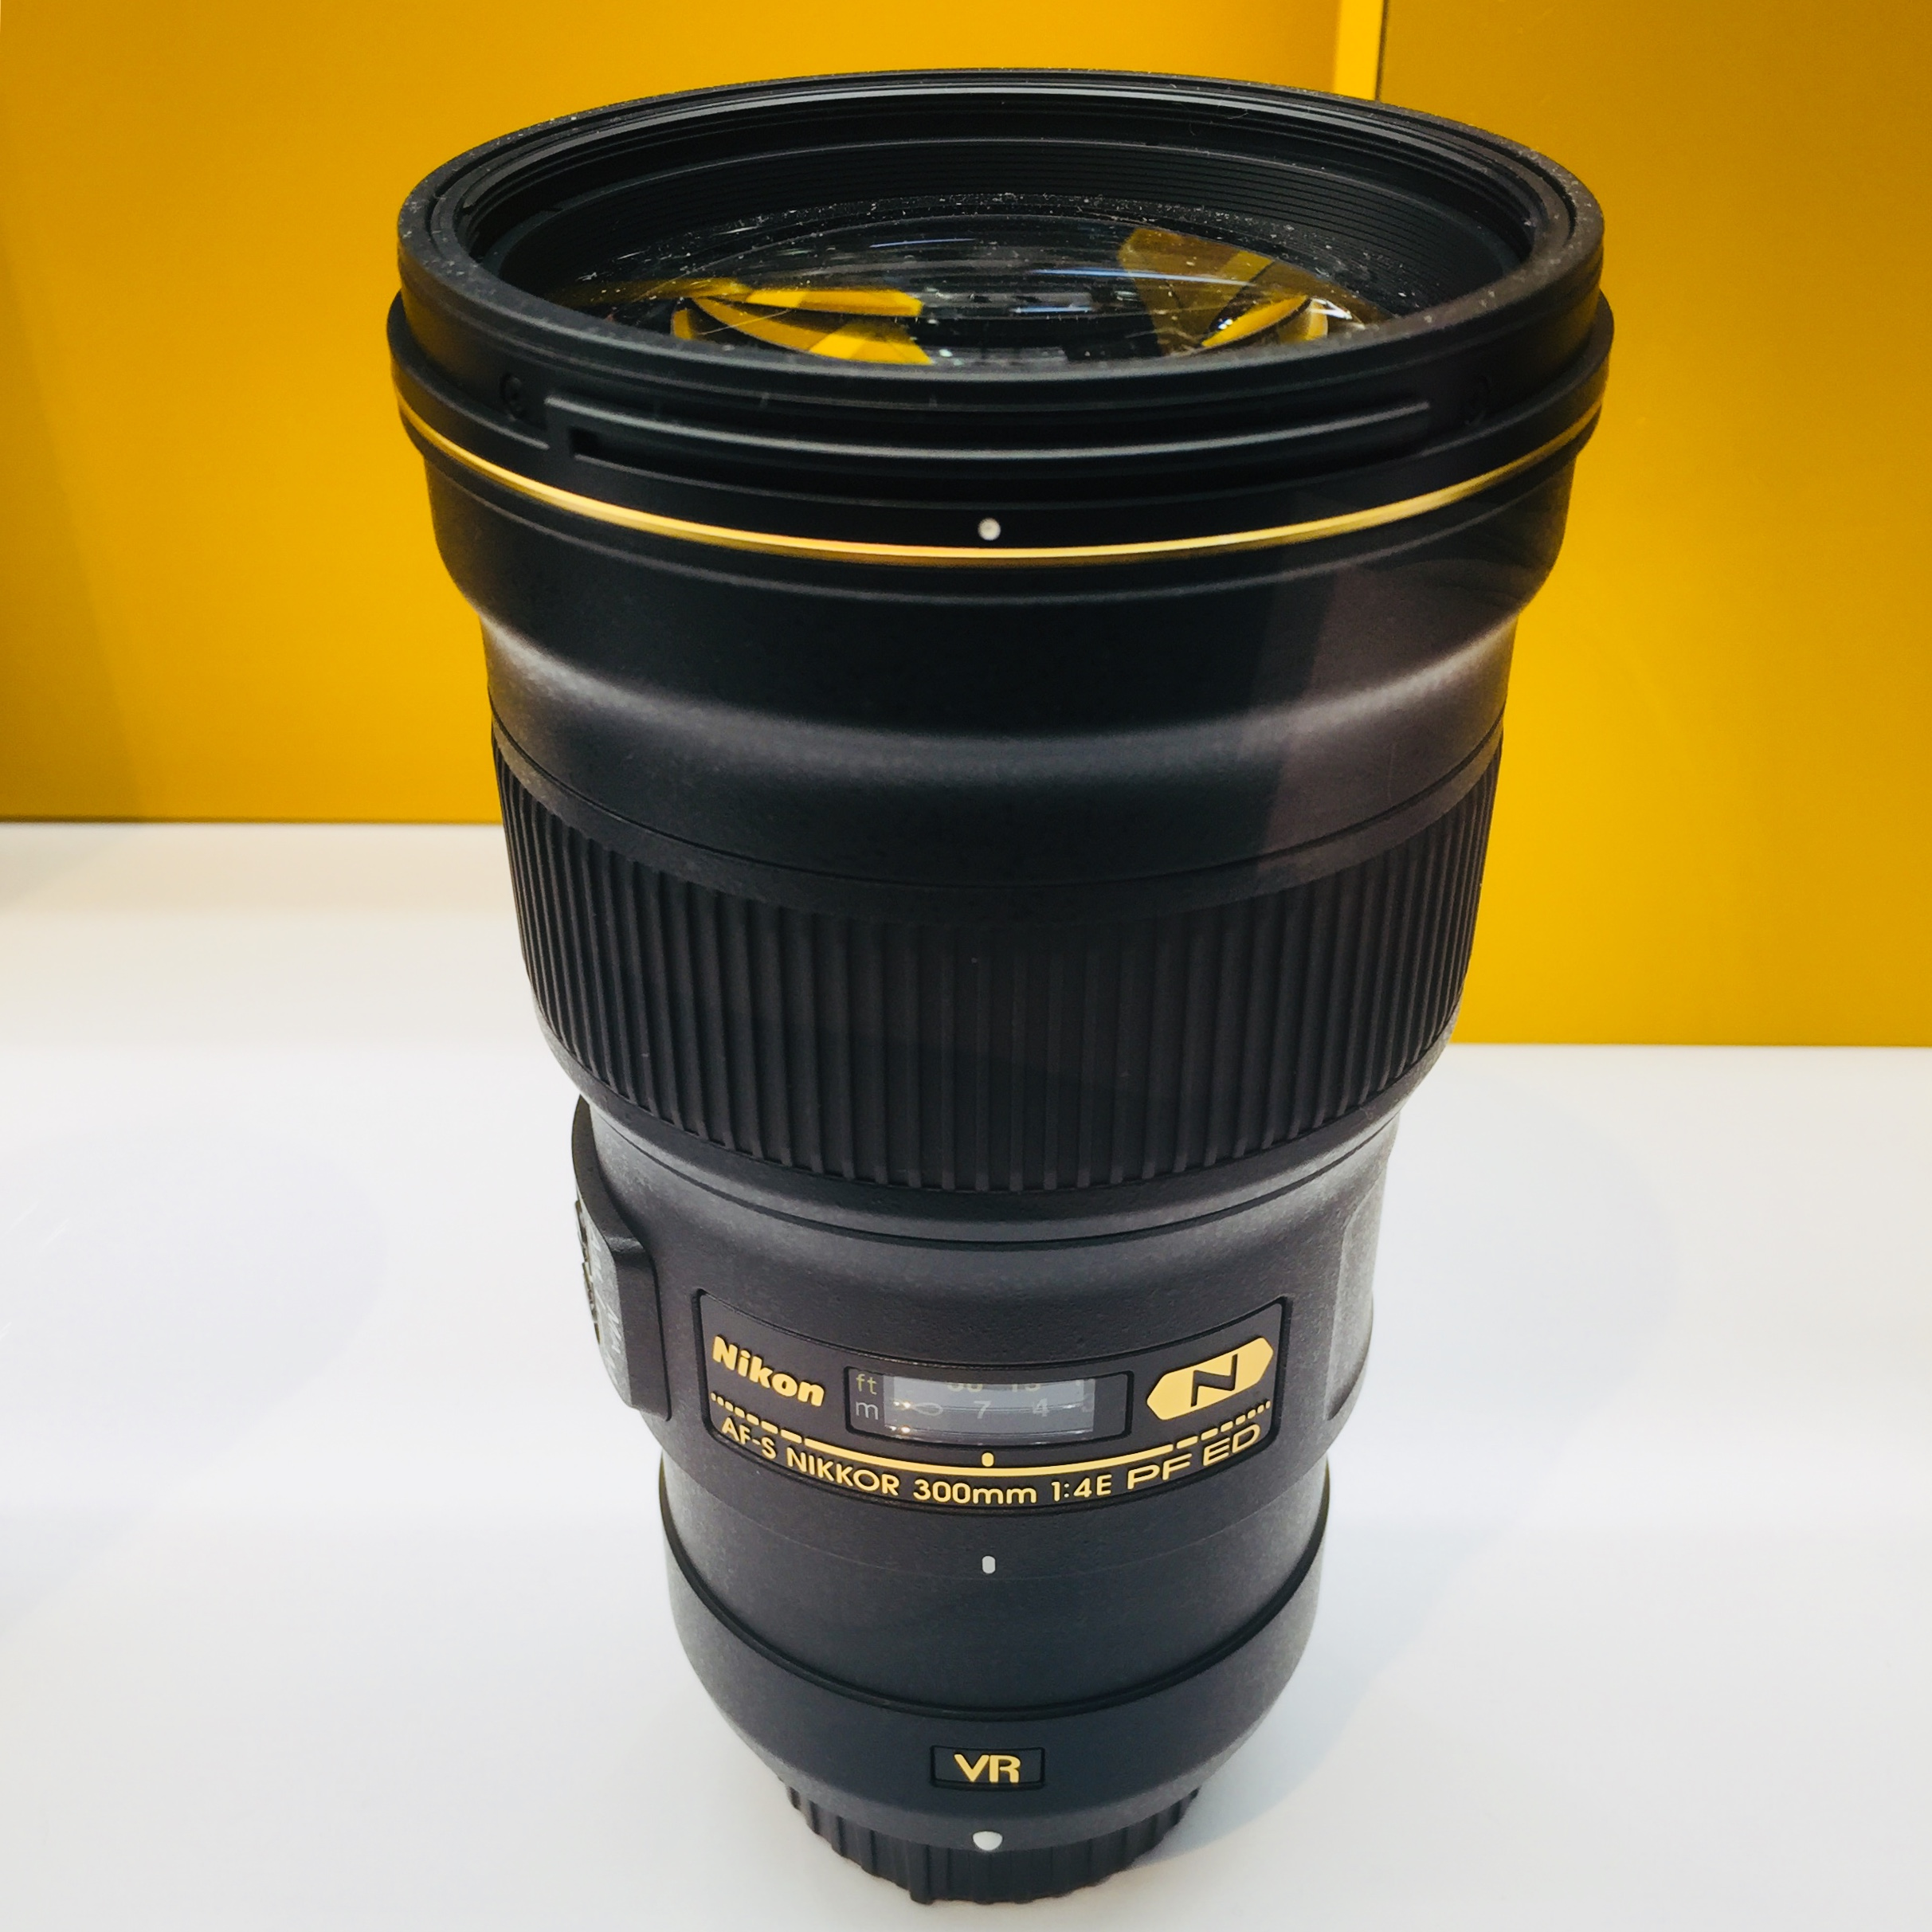 The Nikon 300mm f/4 lens - this thing is an incredible travel telephoto lens